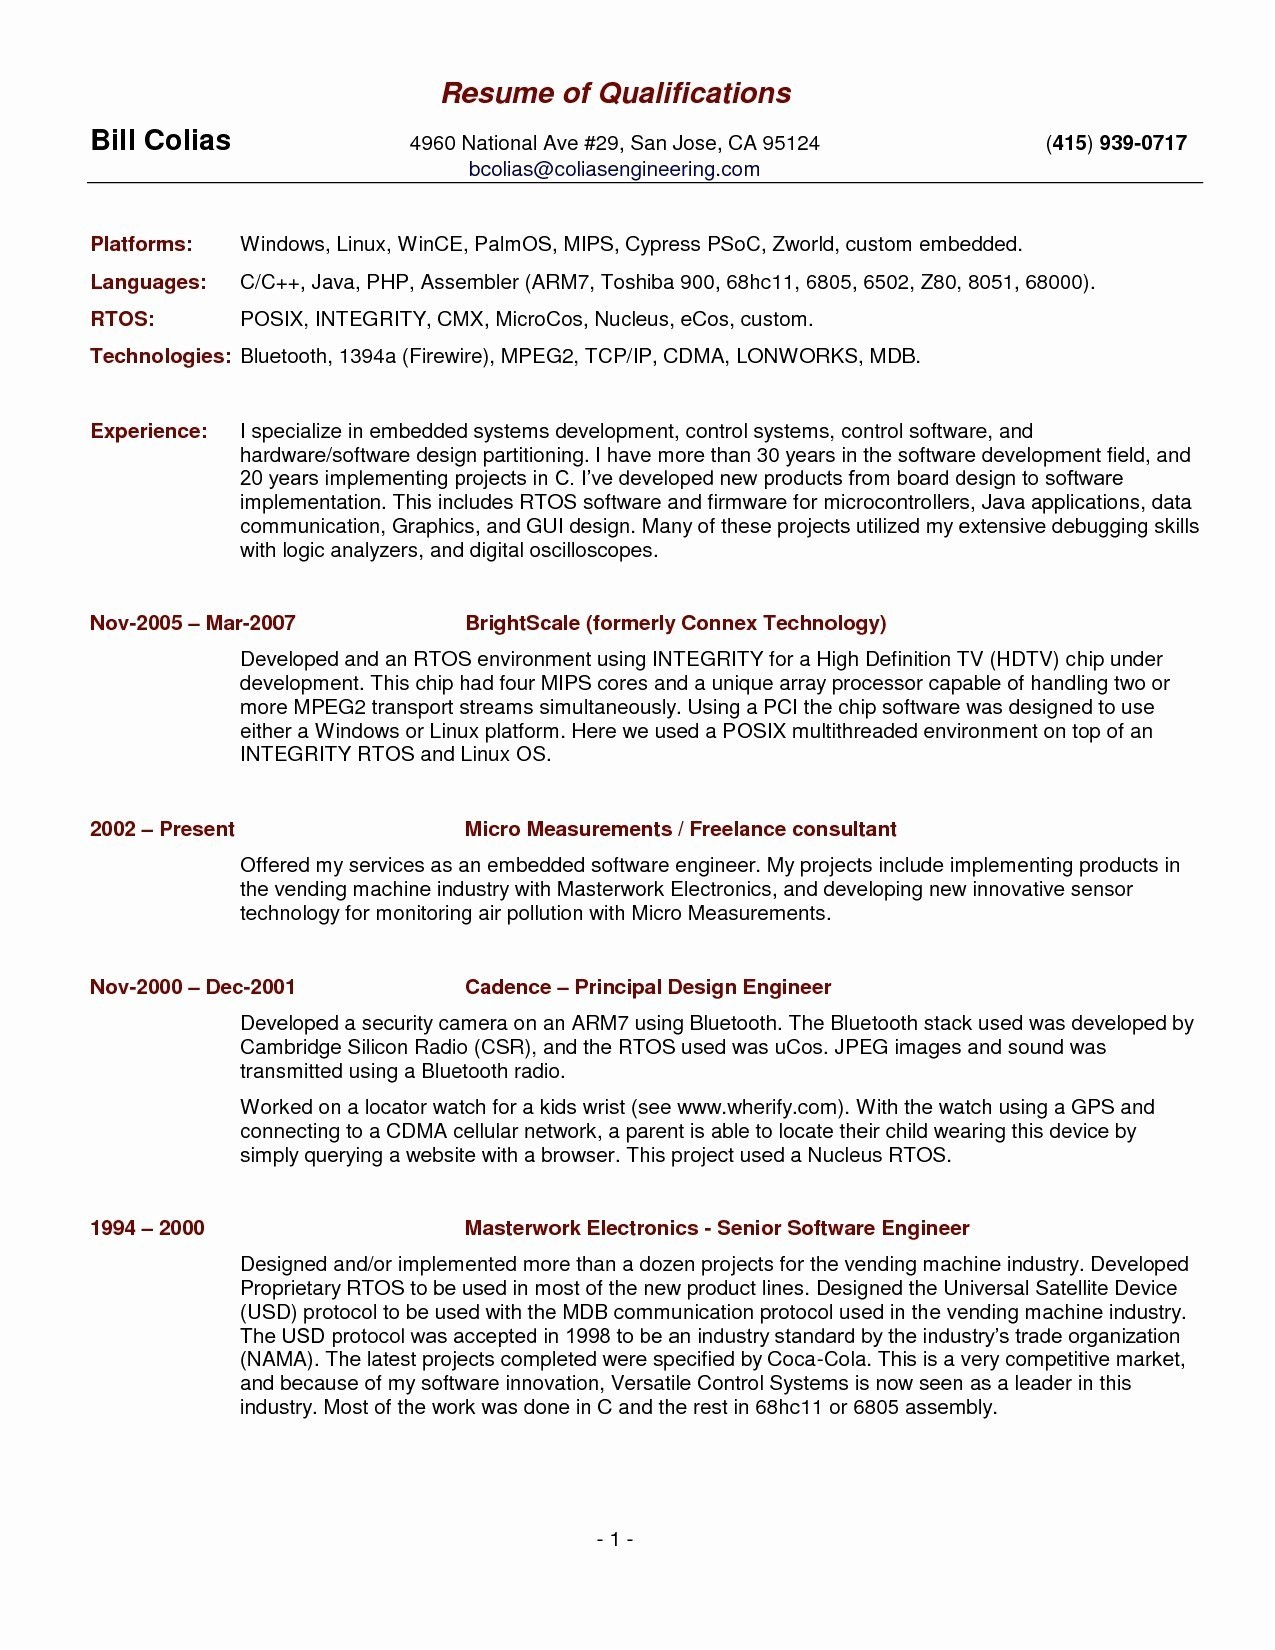 Waitress Resume Template - Waitress Resume Examples Lovely New where Can I Get A Resume Unique